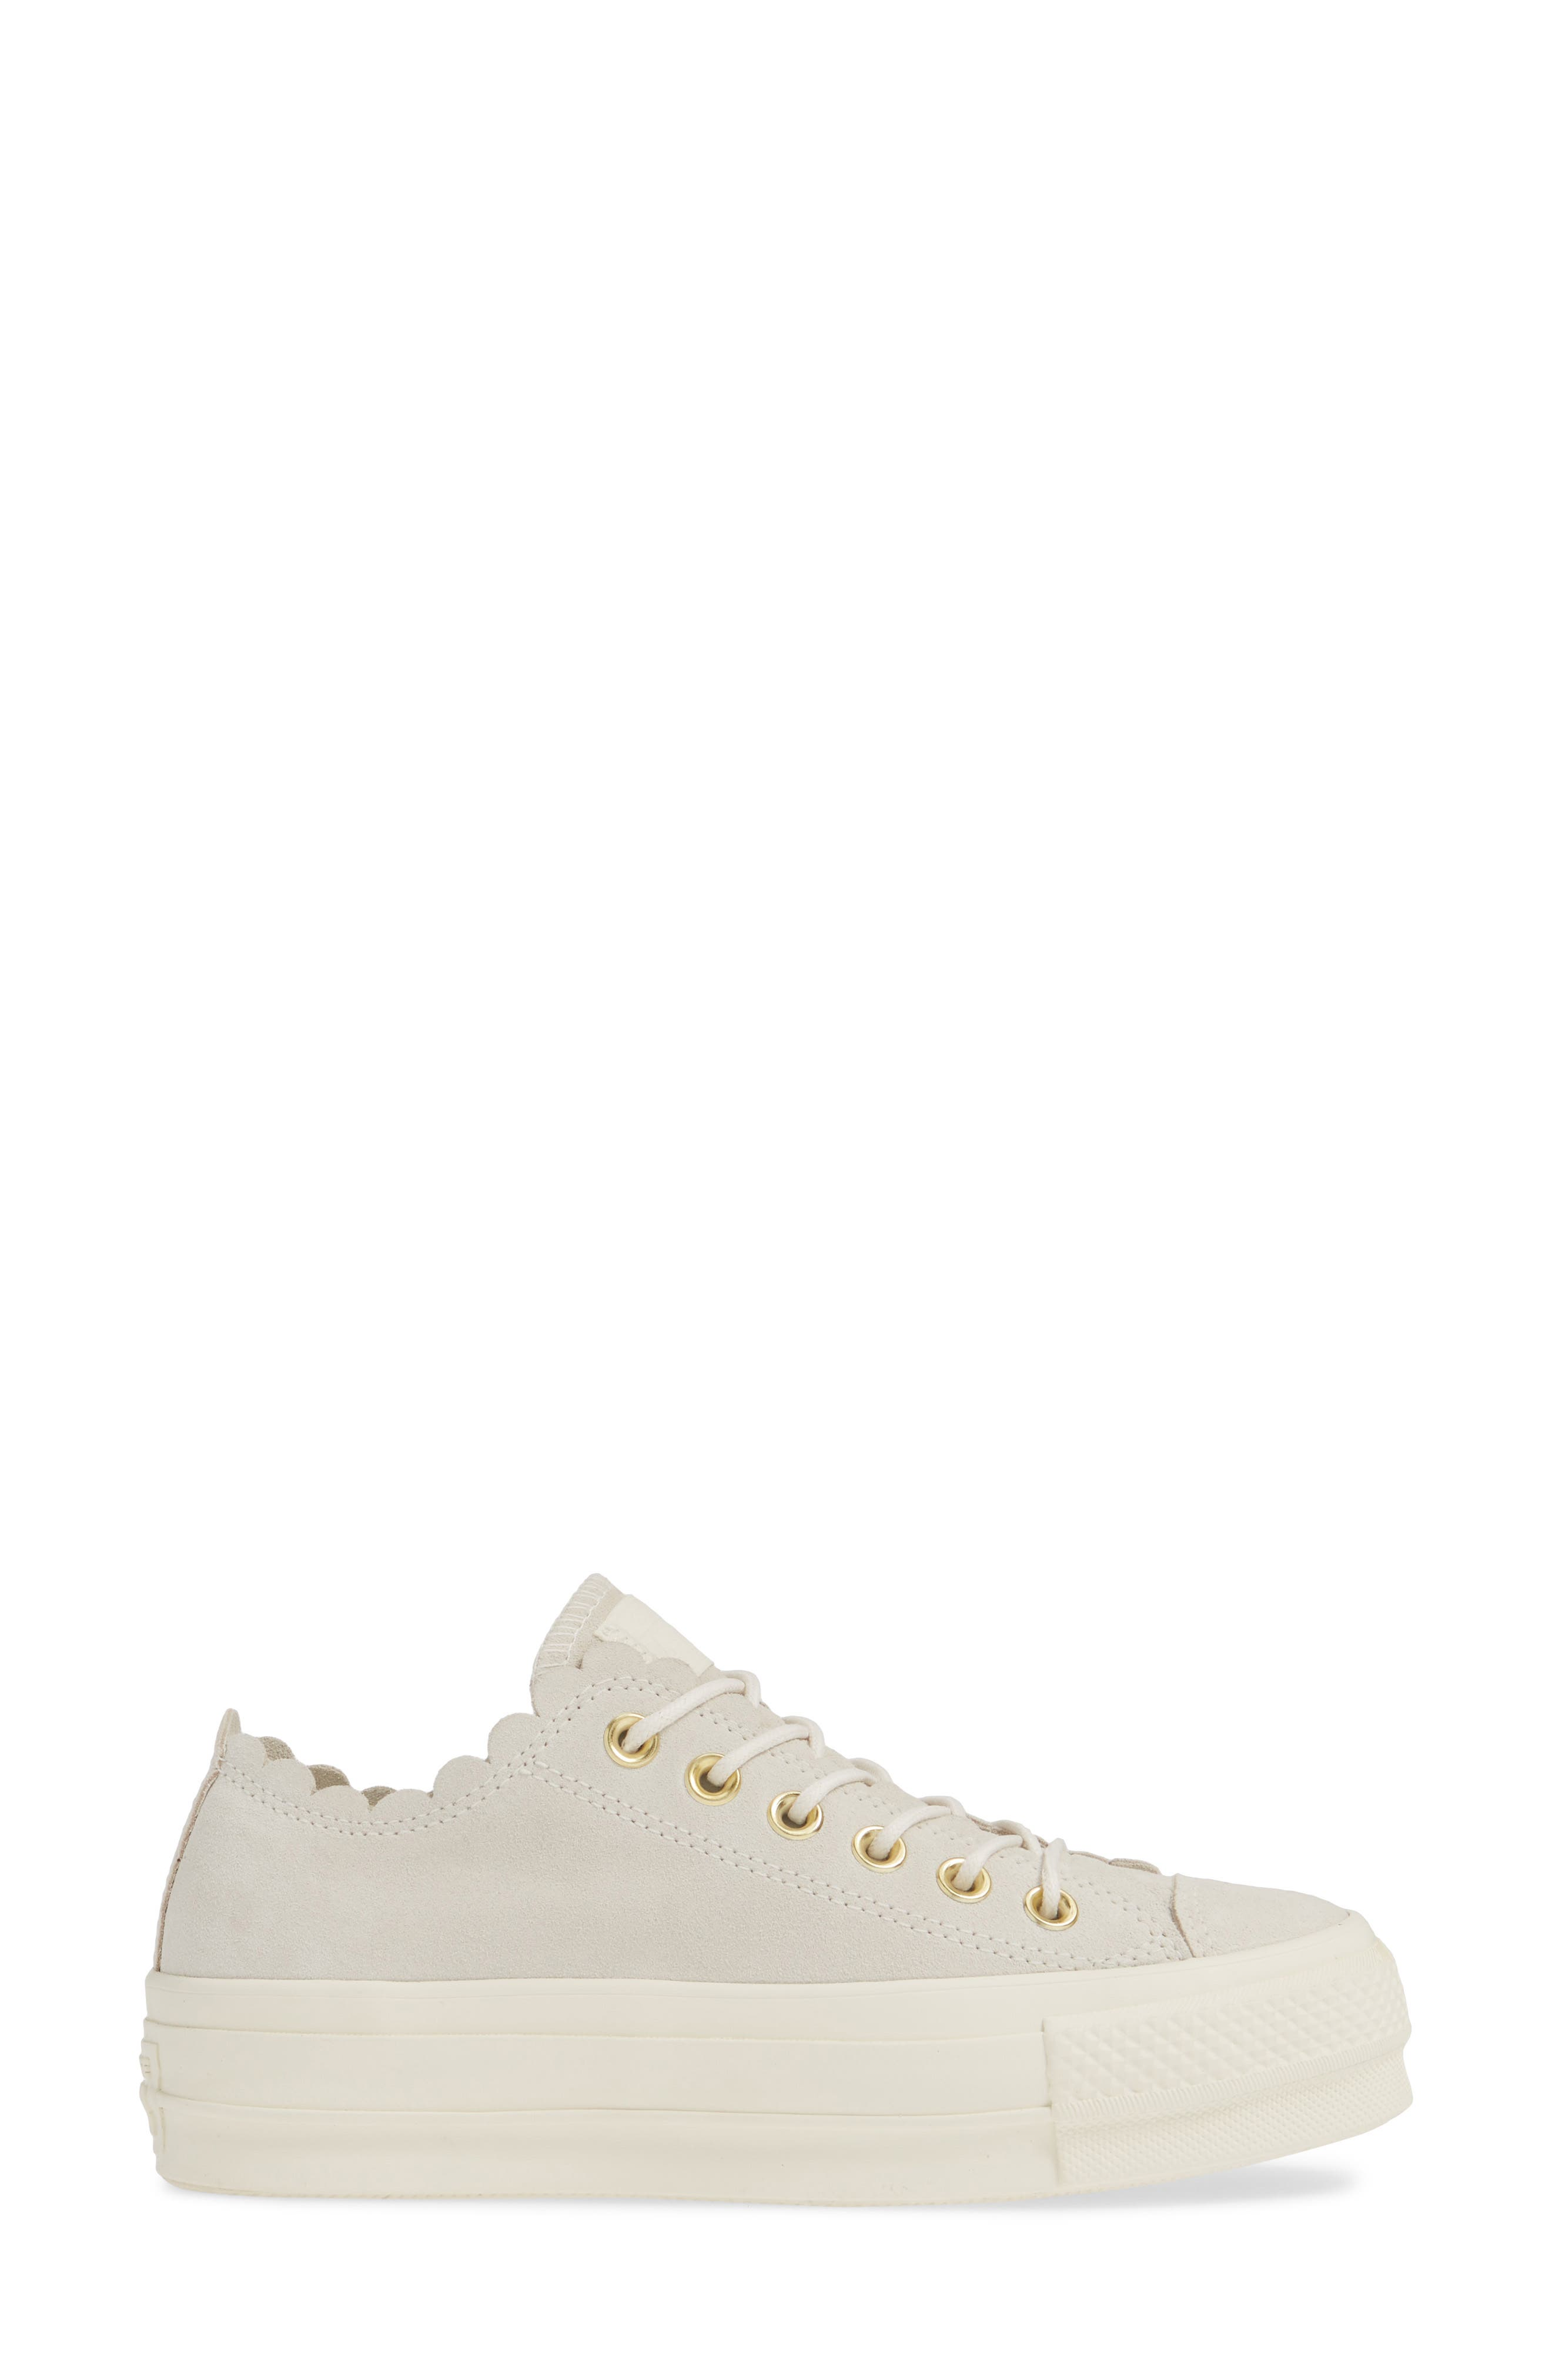 ,                             Chuck Taylor<sup>®</sup> All Star<sup>®</sup> Frilly Scallop Platform Sneaker,                             Alternate thumbnail 3, color,                             020